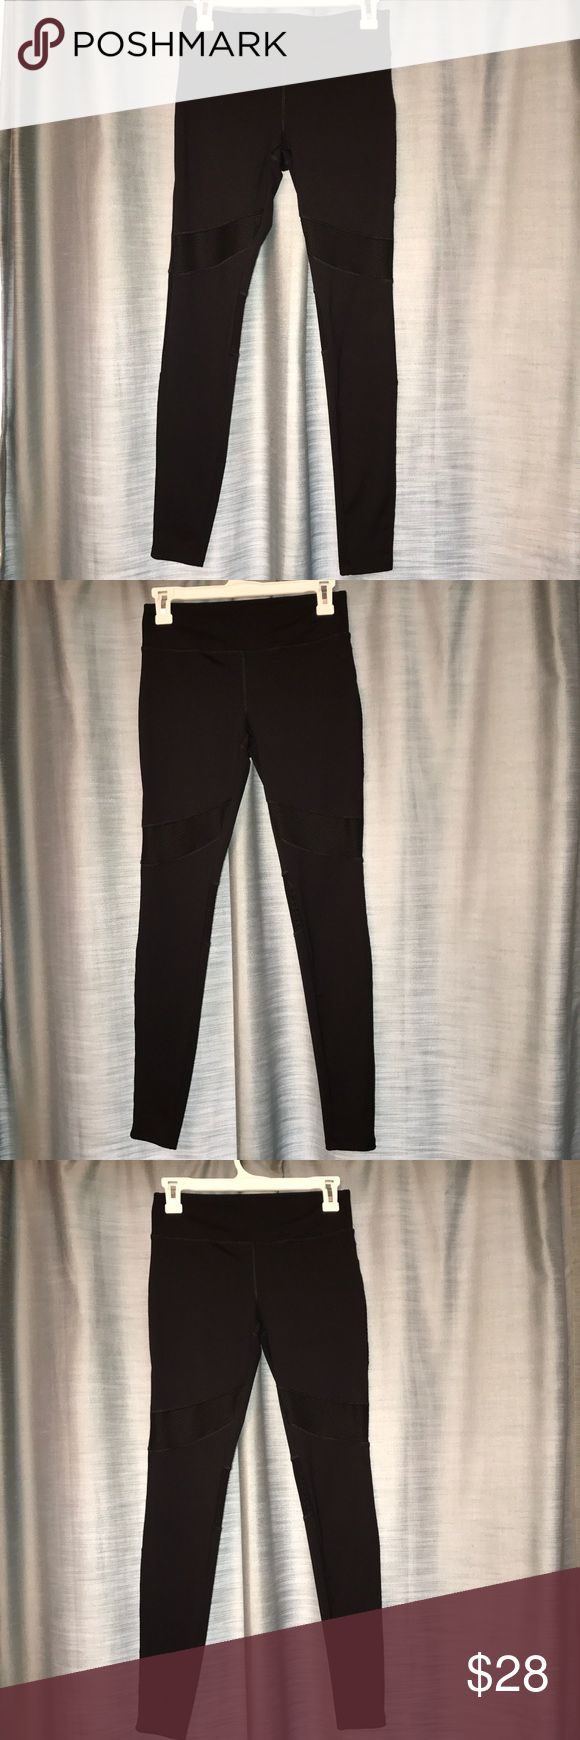 Leggings with mesh designs These are super cute, stretchy enough to where they fit just right just haven't worn them anymore after the few times I wore them. These fit true to size and are in great condition. Let me know if you have any questions! Forever 21 Pants Leggings